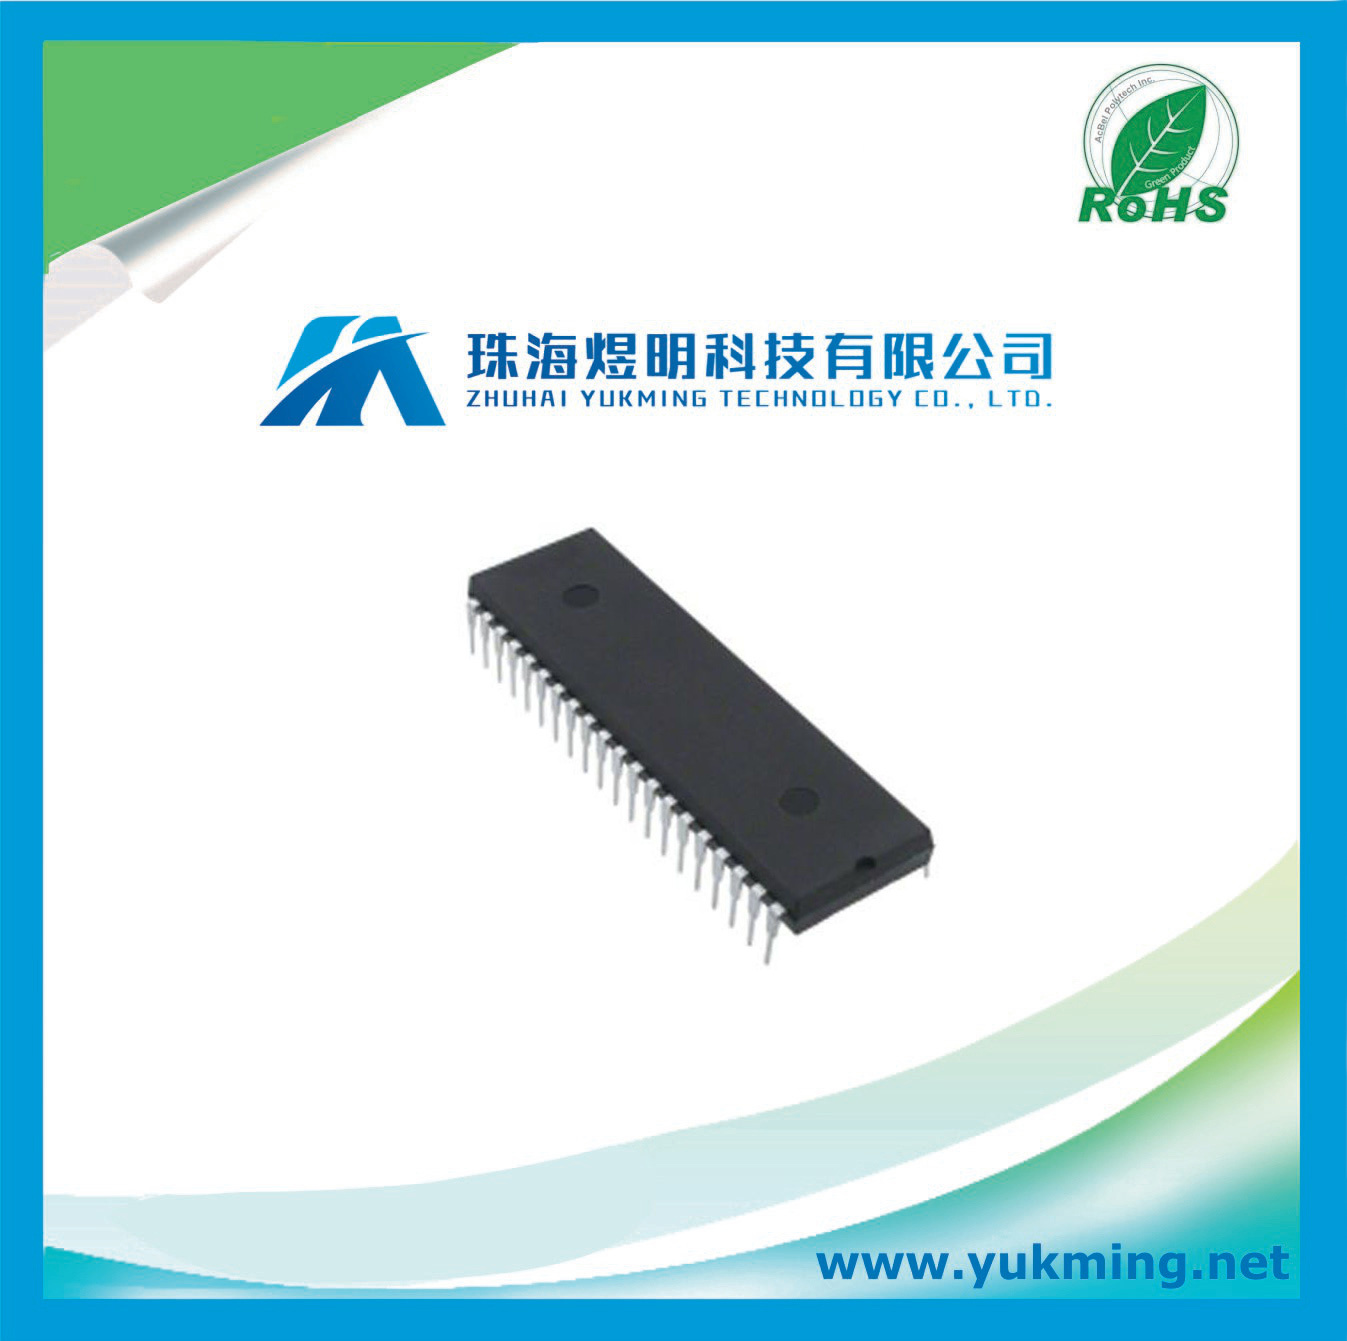 China Lcd Driver Ic Integrated Circuit Icl7106cpl Electronic Uln2003 Component Electronics Stock